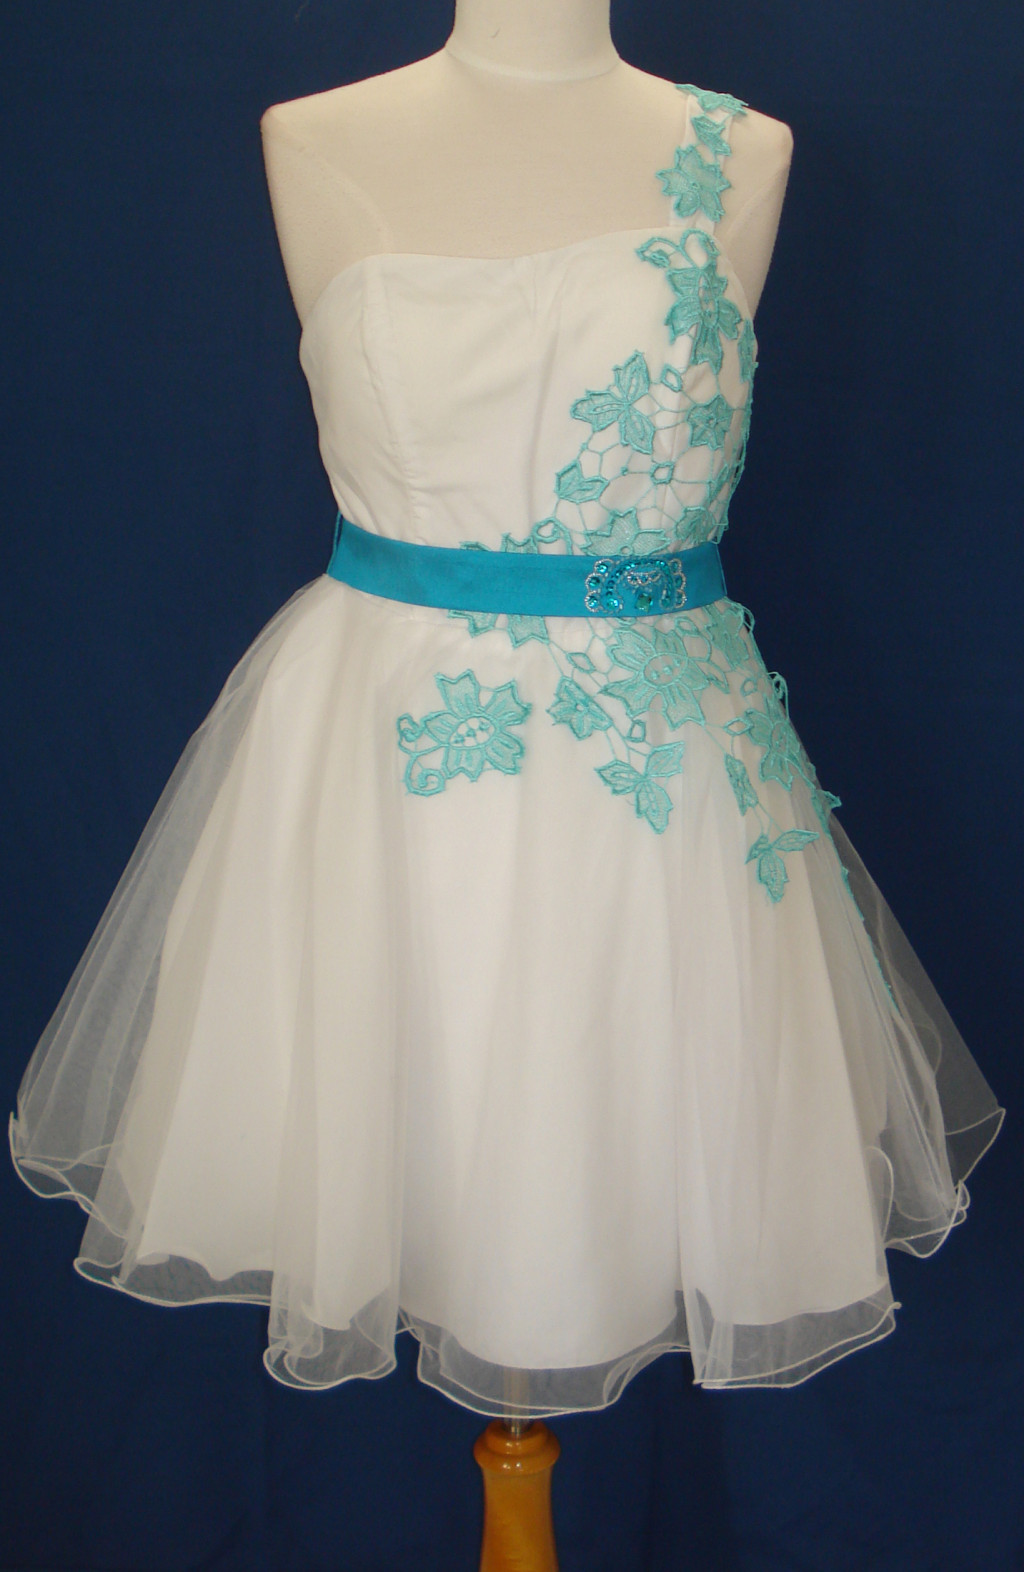 Short dress sweet 16 dance prom evening pageant party for Turquoise and white wedding dresses